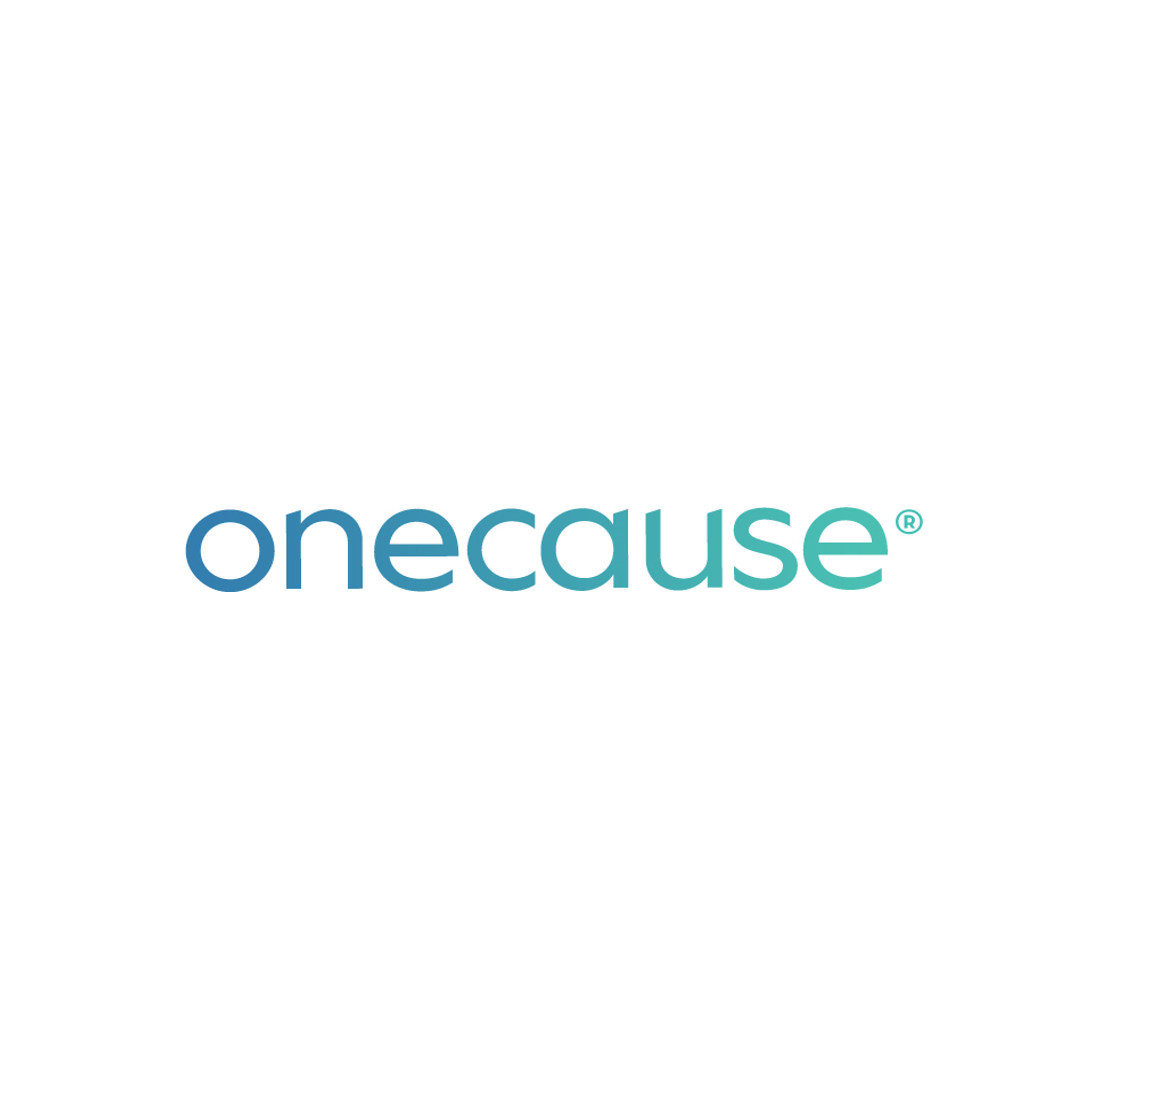 OneCause